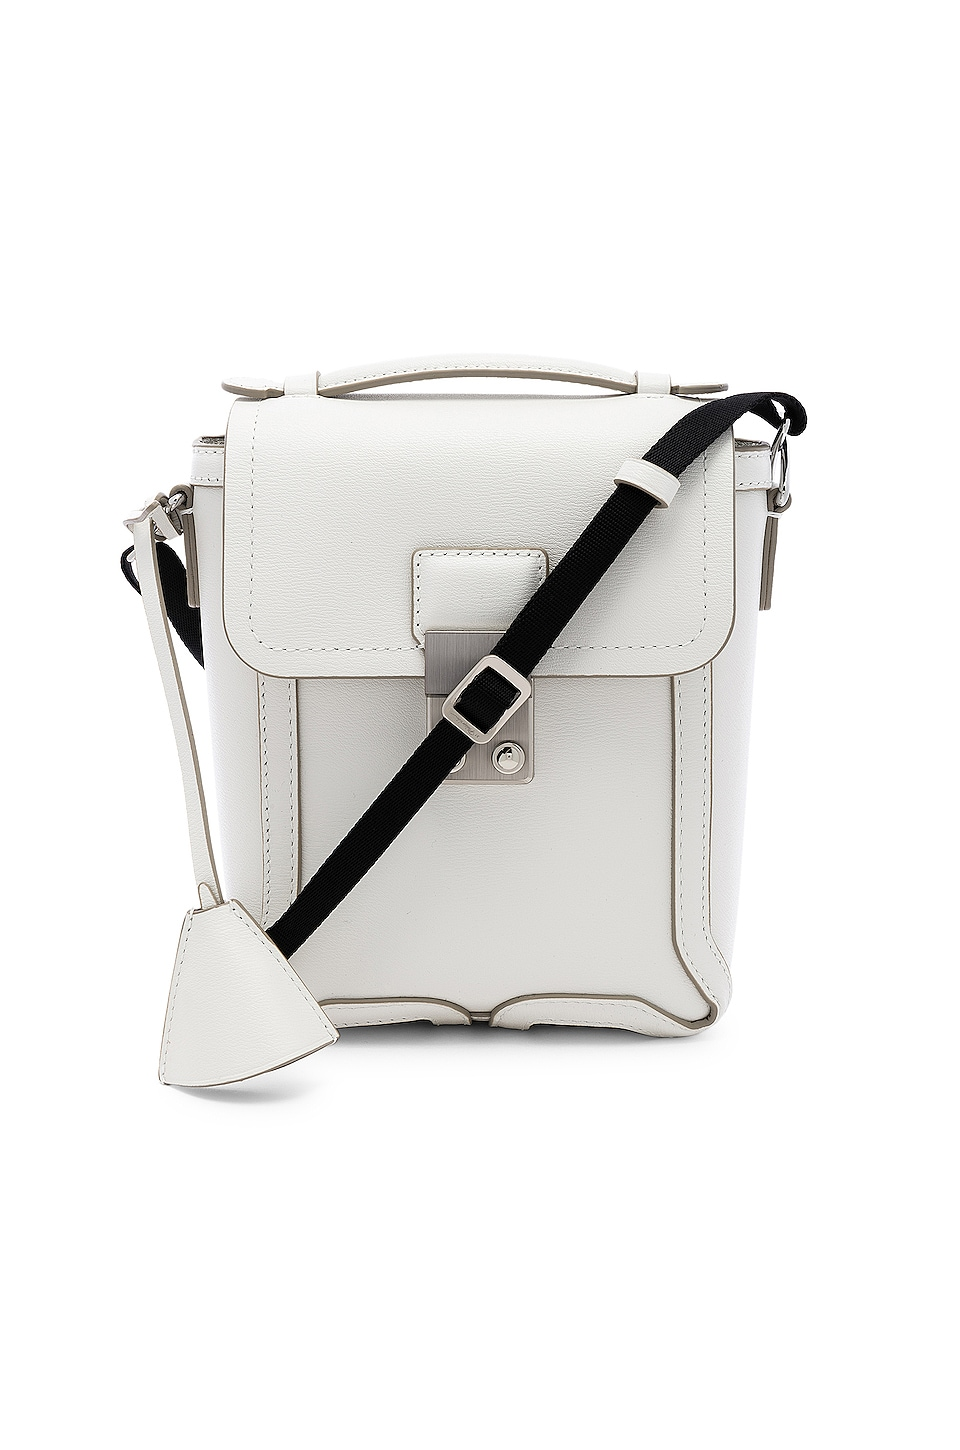 3.1 phillip lim Pashli Camera Bag in Antique White